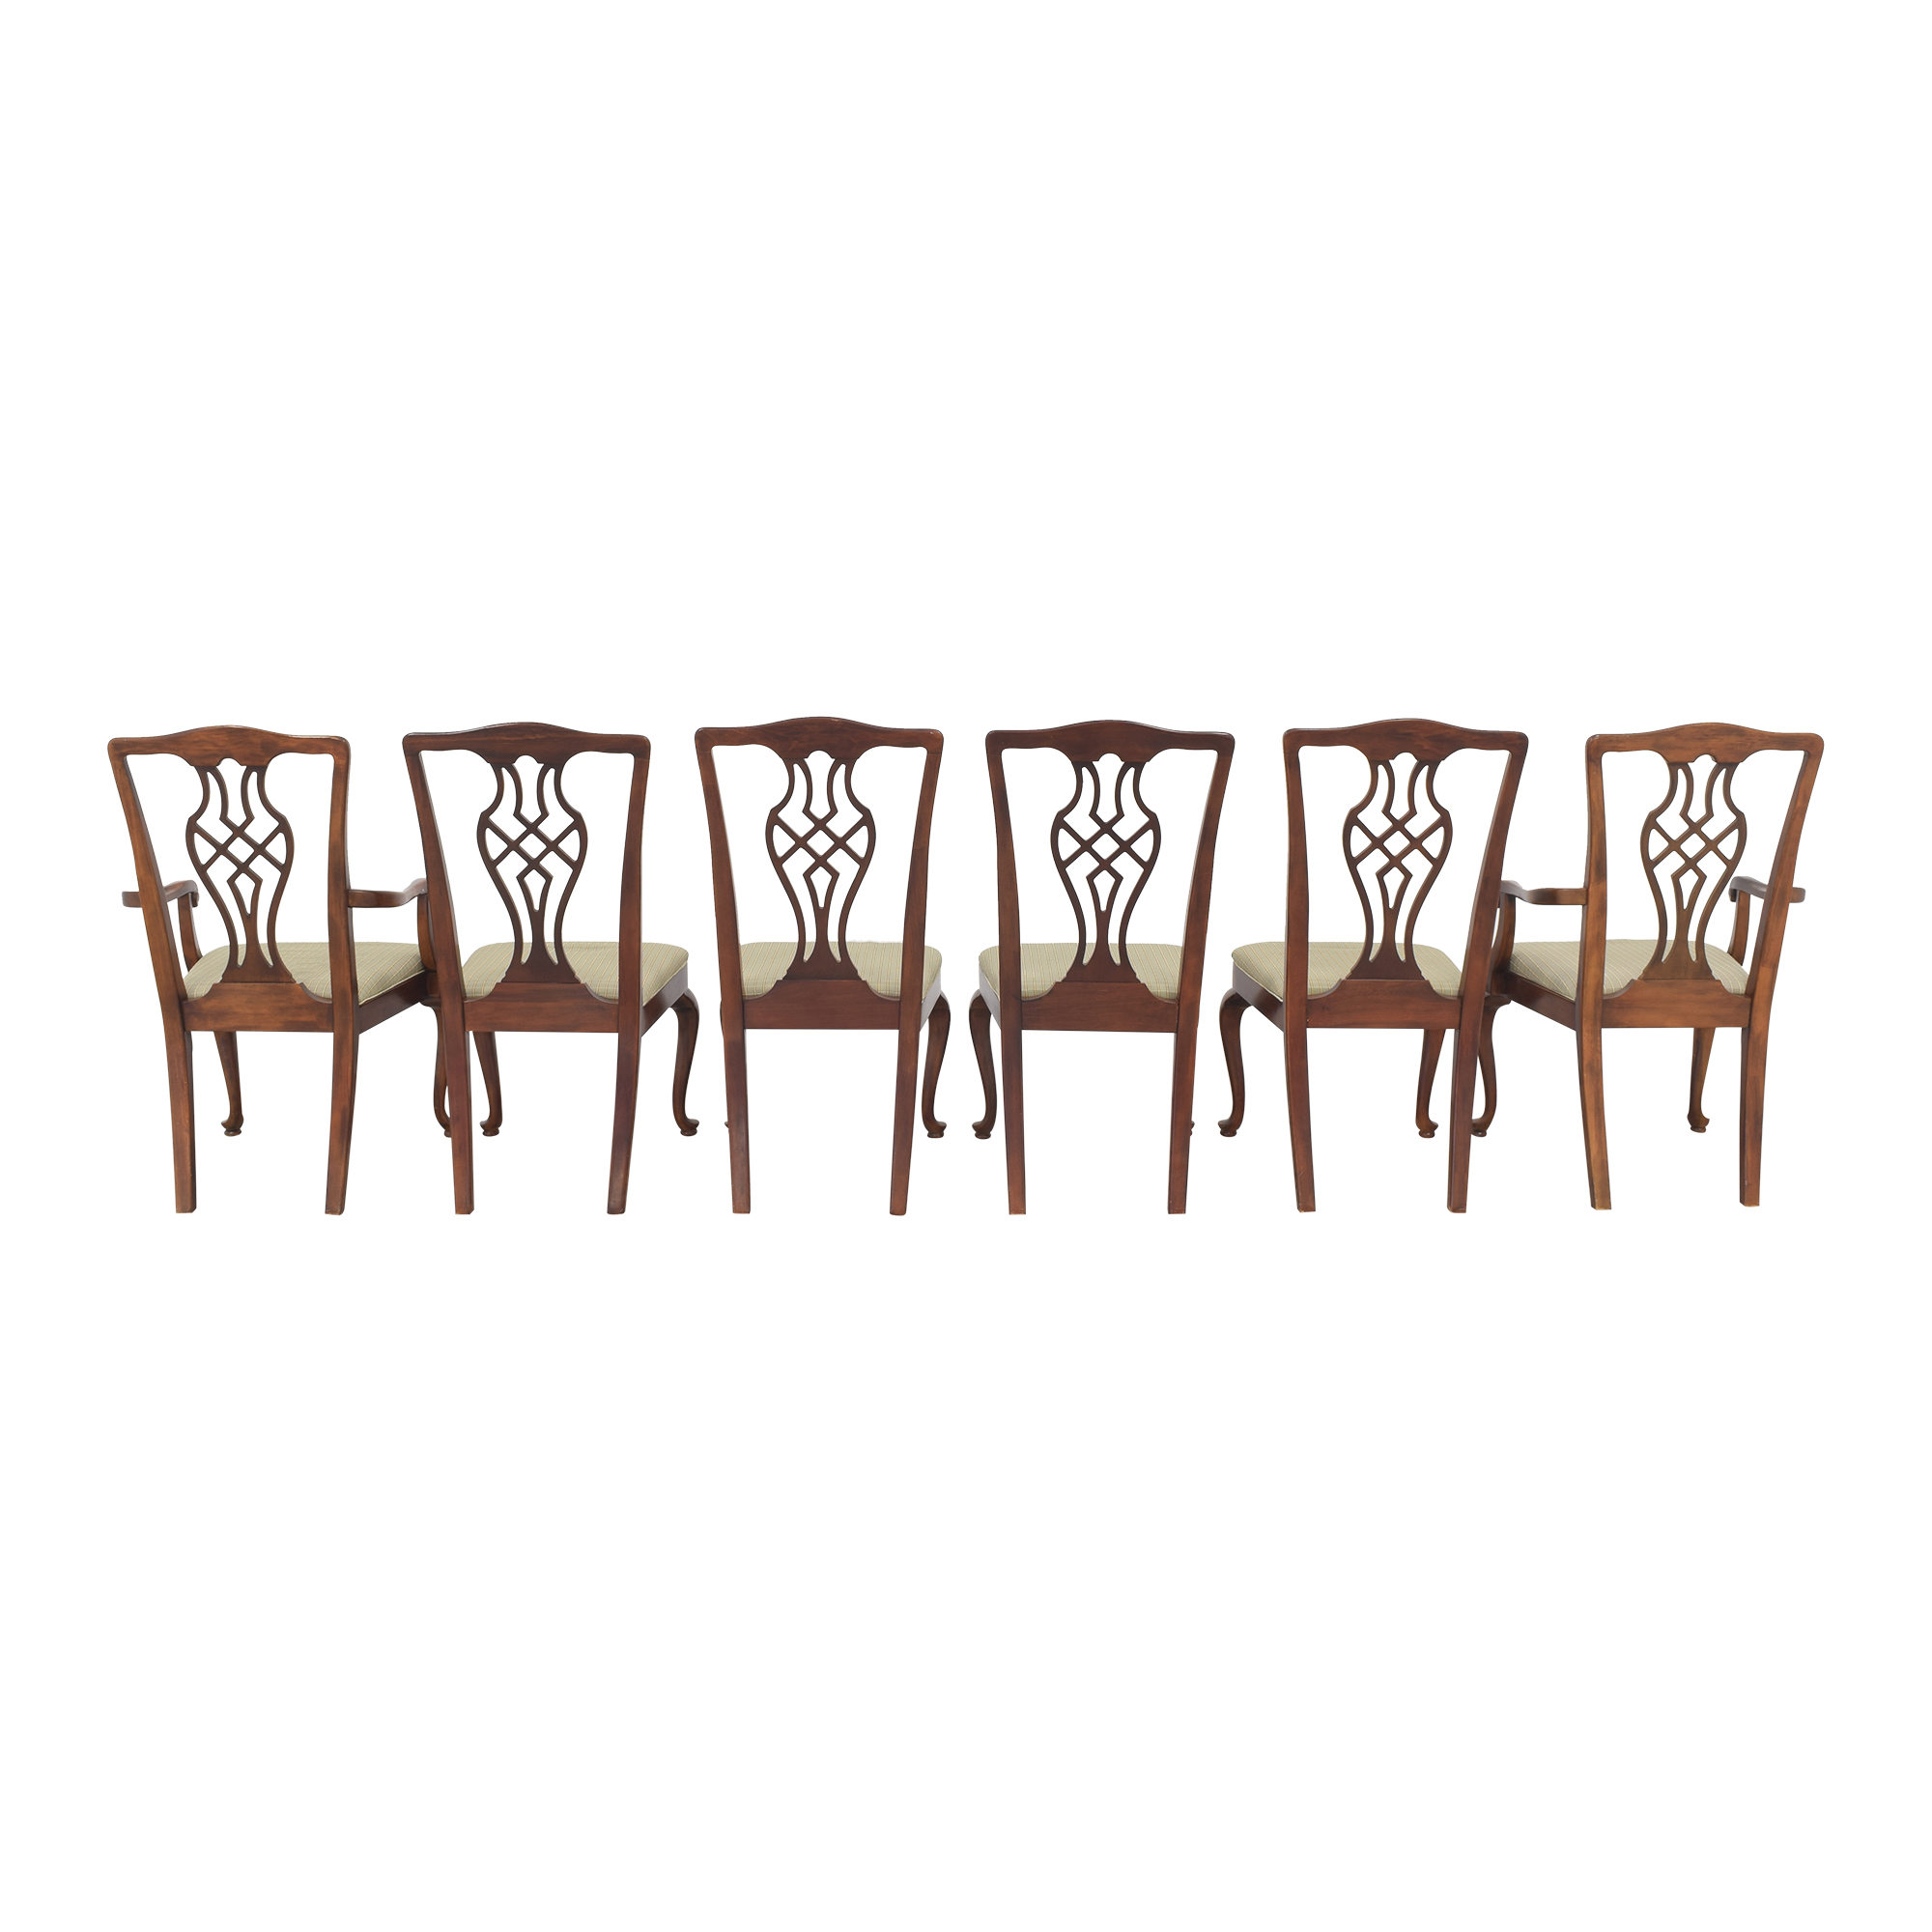 Drexel Heritage Drexel Upholstered Dining Chairs nyc